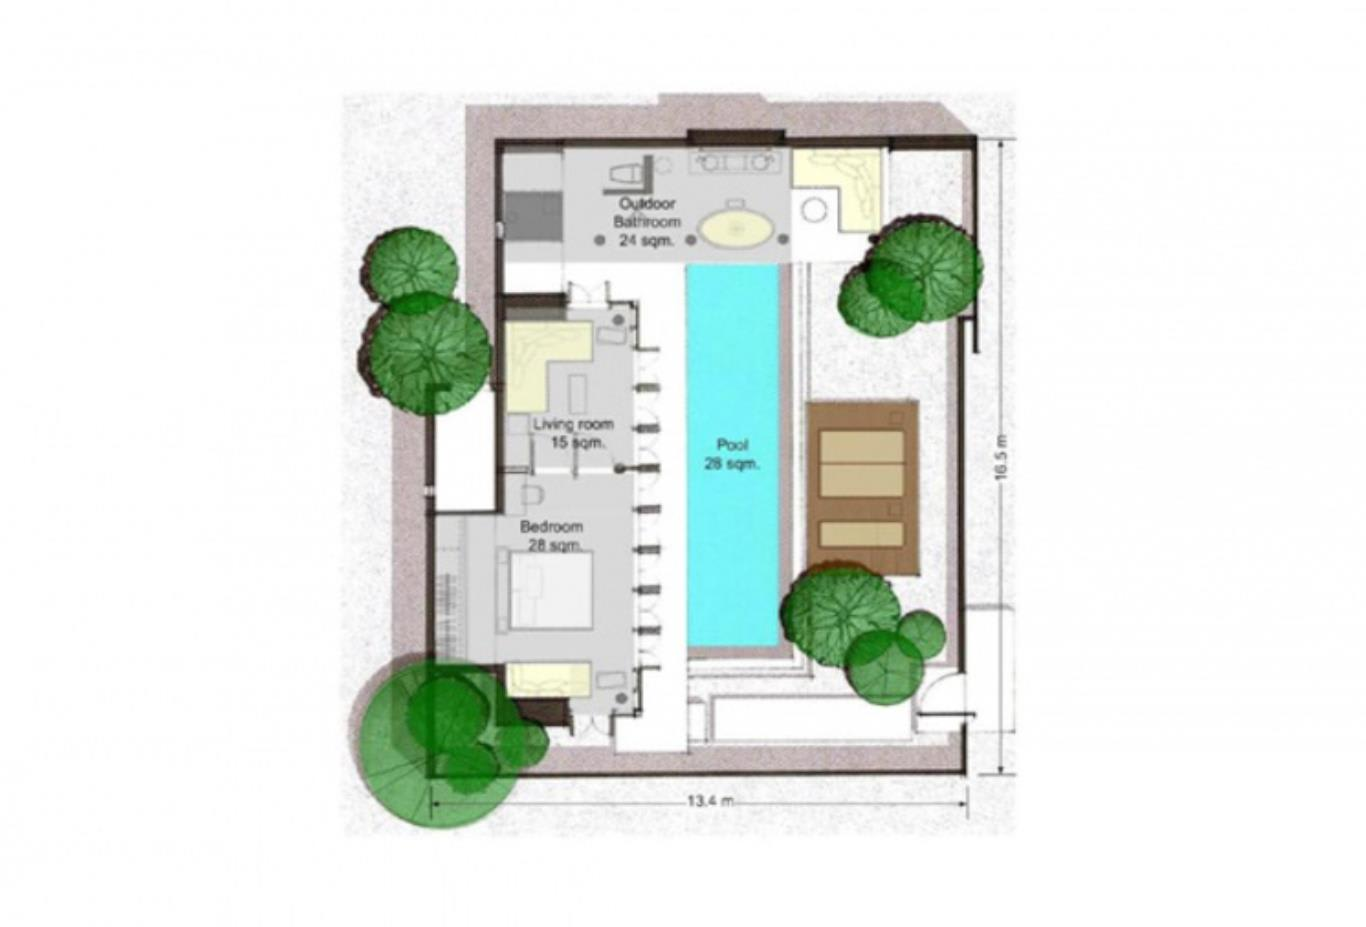 1 Bedroom Pool Villa Suite floorplan